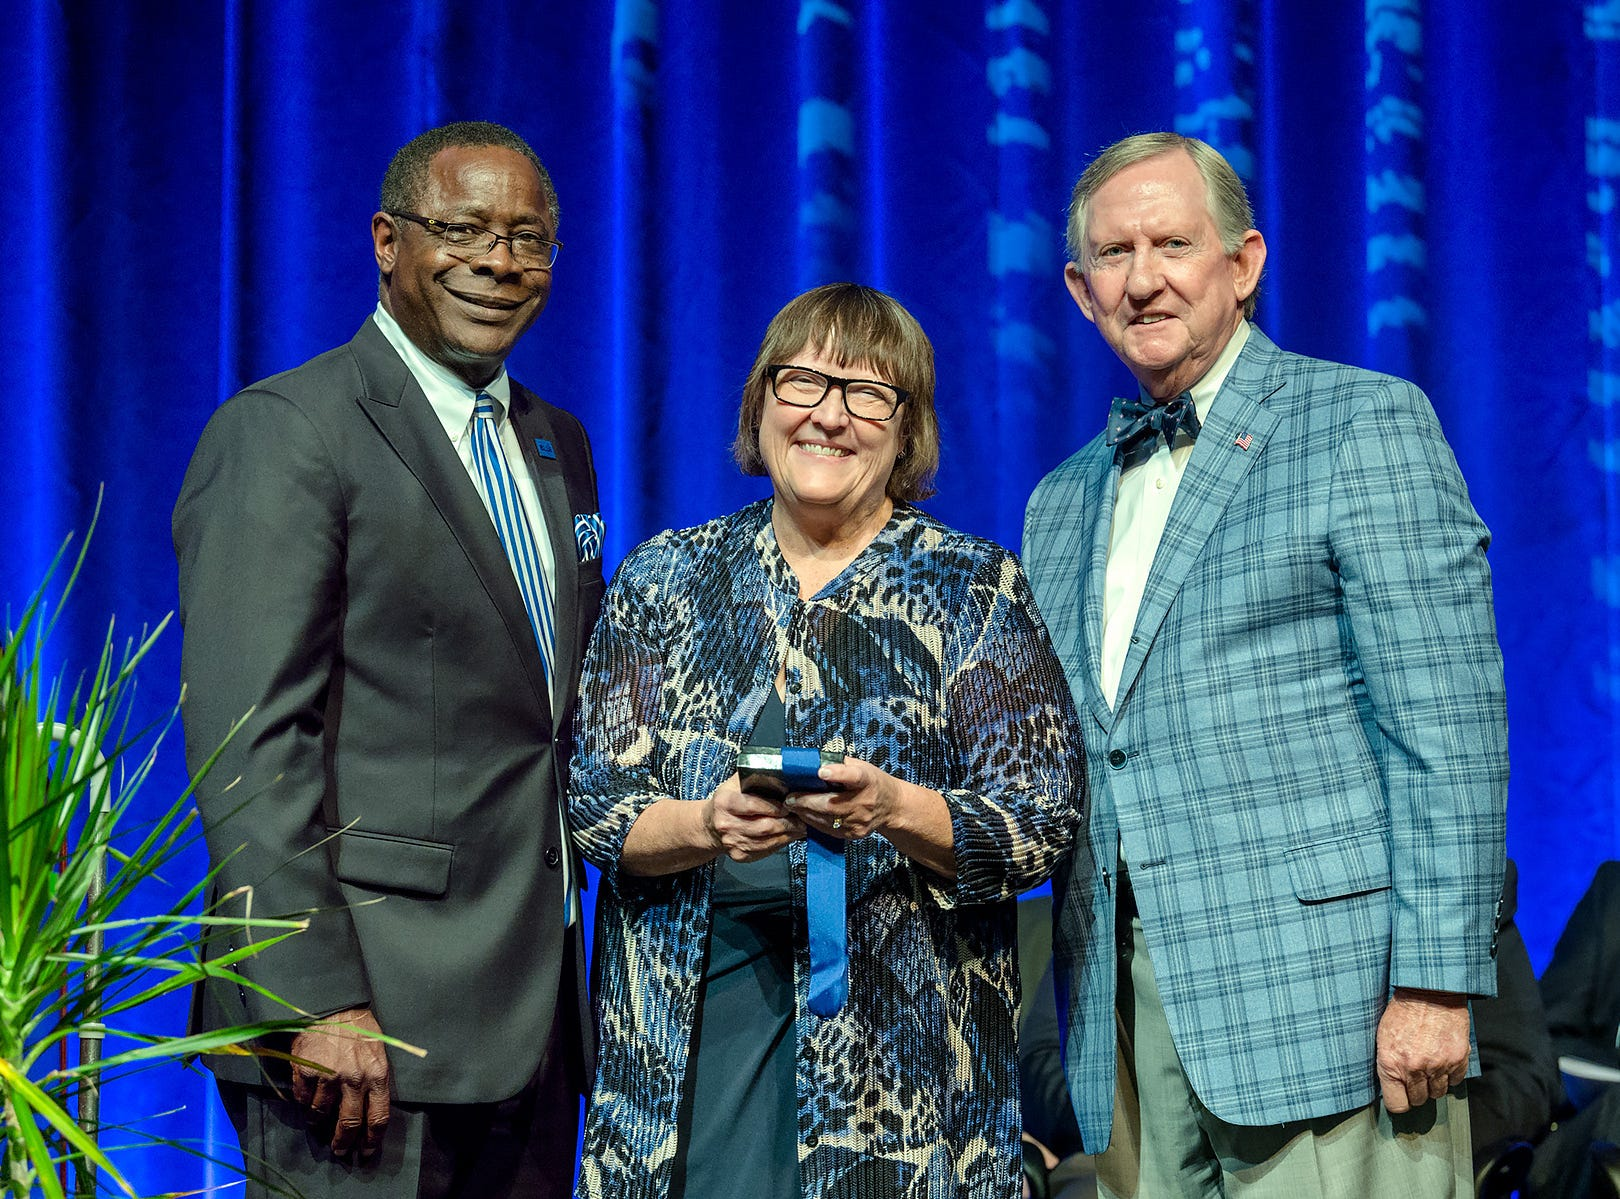 Judith Iriarte-Gross, a professor of chemistry at MTSU since 1996, center, receives the MTSU Foundation's Career Achievement Award during the 2018 Fall Faculty Meeting held Thursday, Aug. 23, inside Tucker Theatre. Shown with her are MTSU President Sidney A. McPhee, left, and Ron Nichols, president of the MTSU Foundation Board and an alumnus.